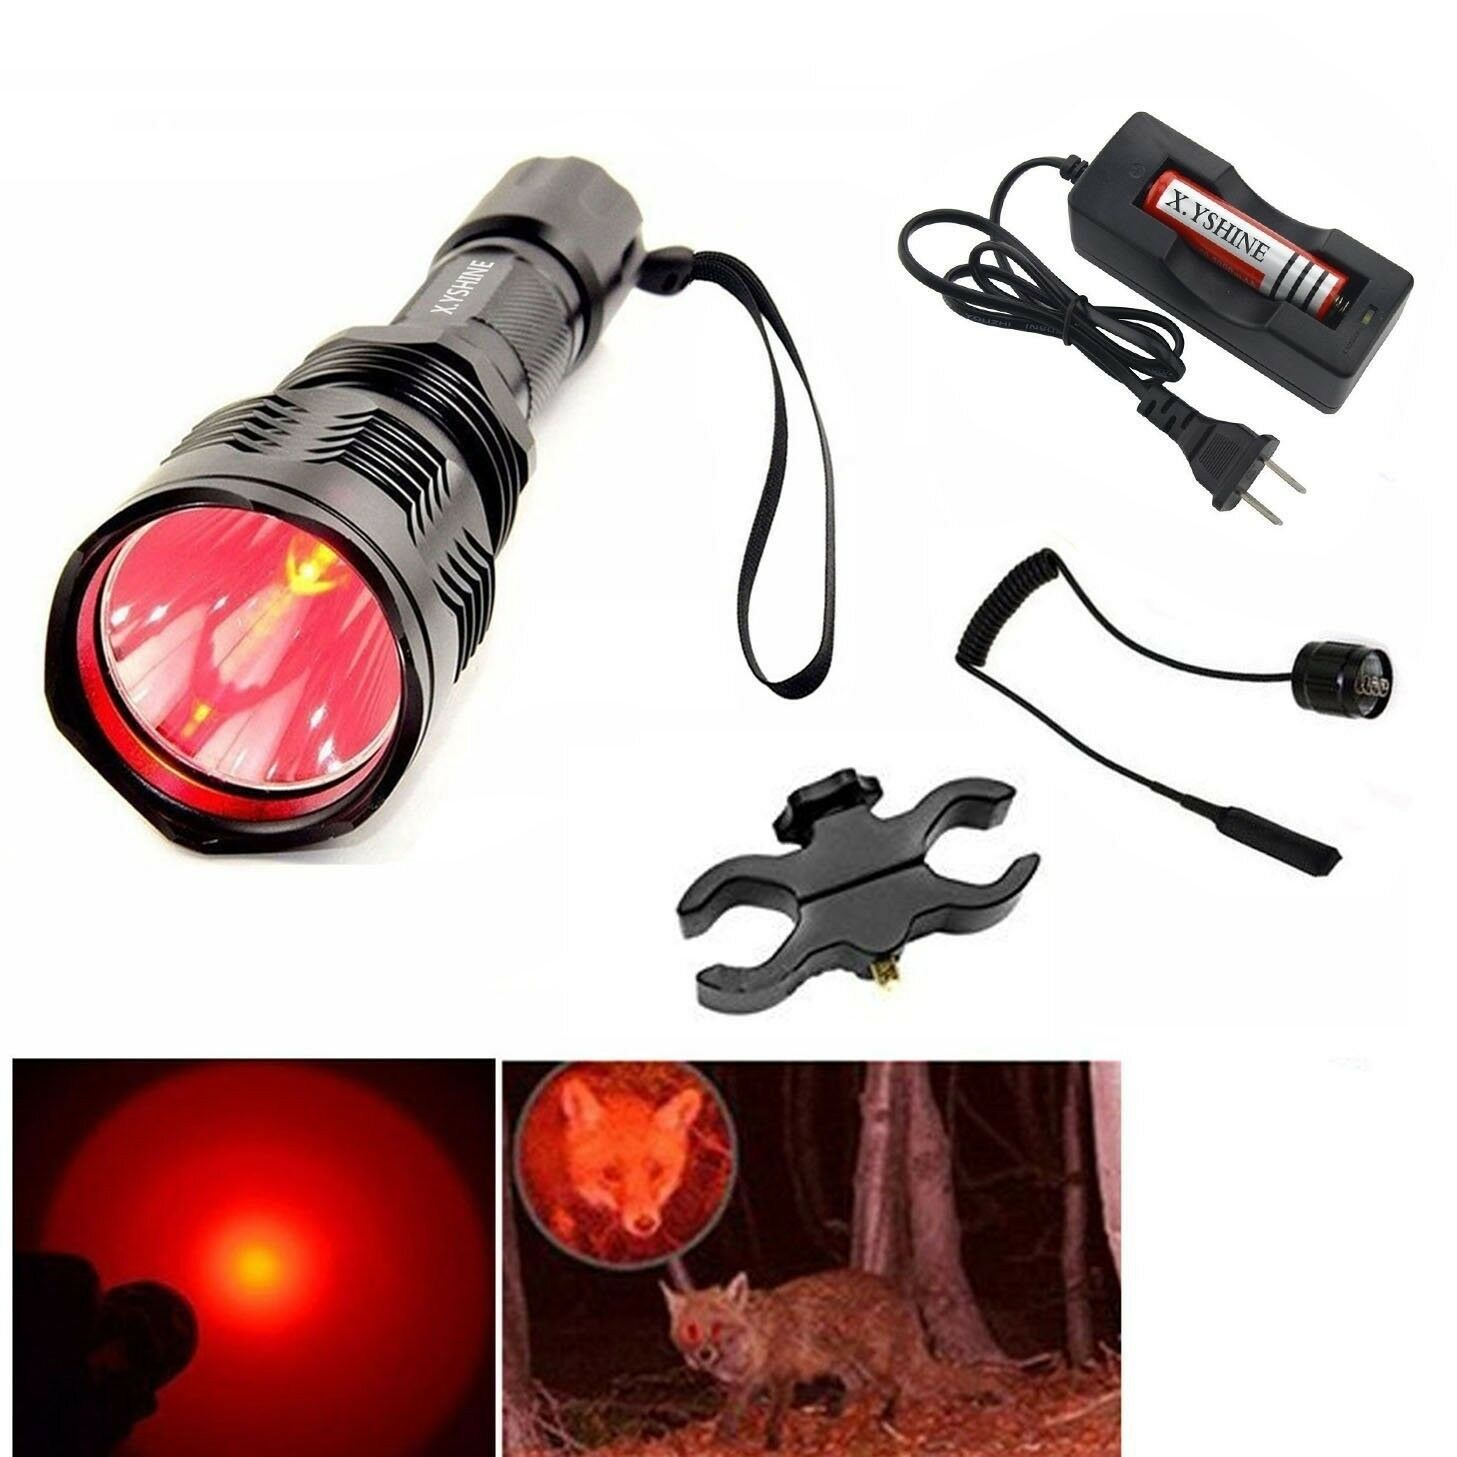 Tactical Hunting Night Flashlight Red Light LED Laser Mount Torch Predator Gun